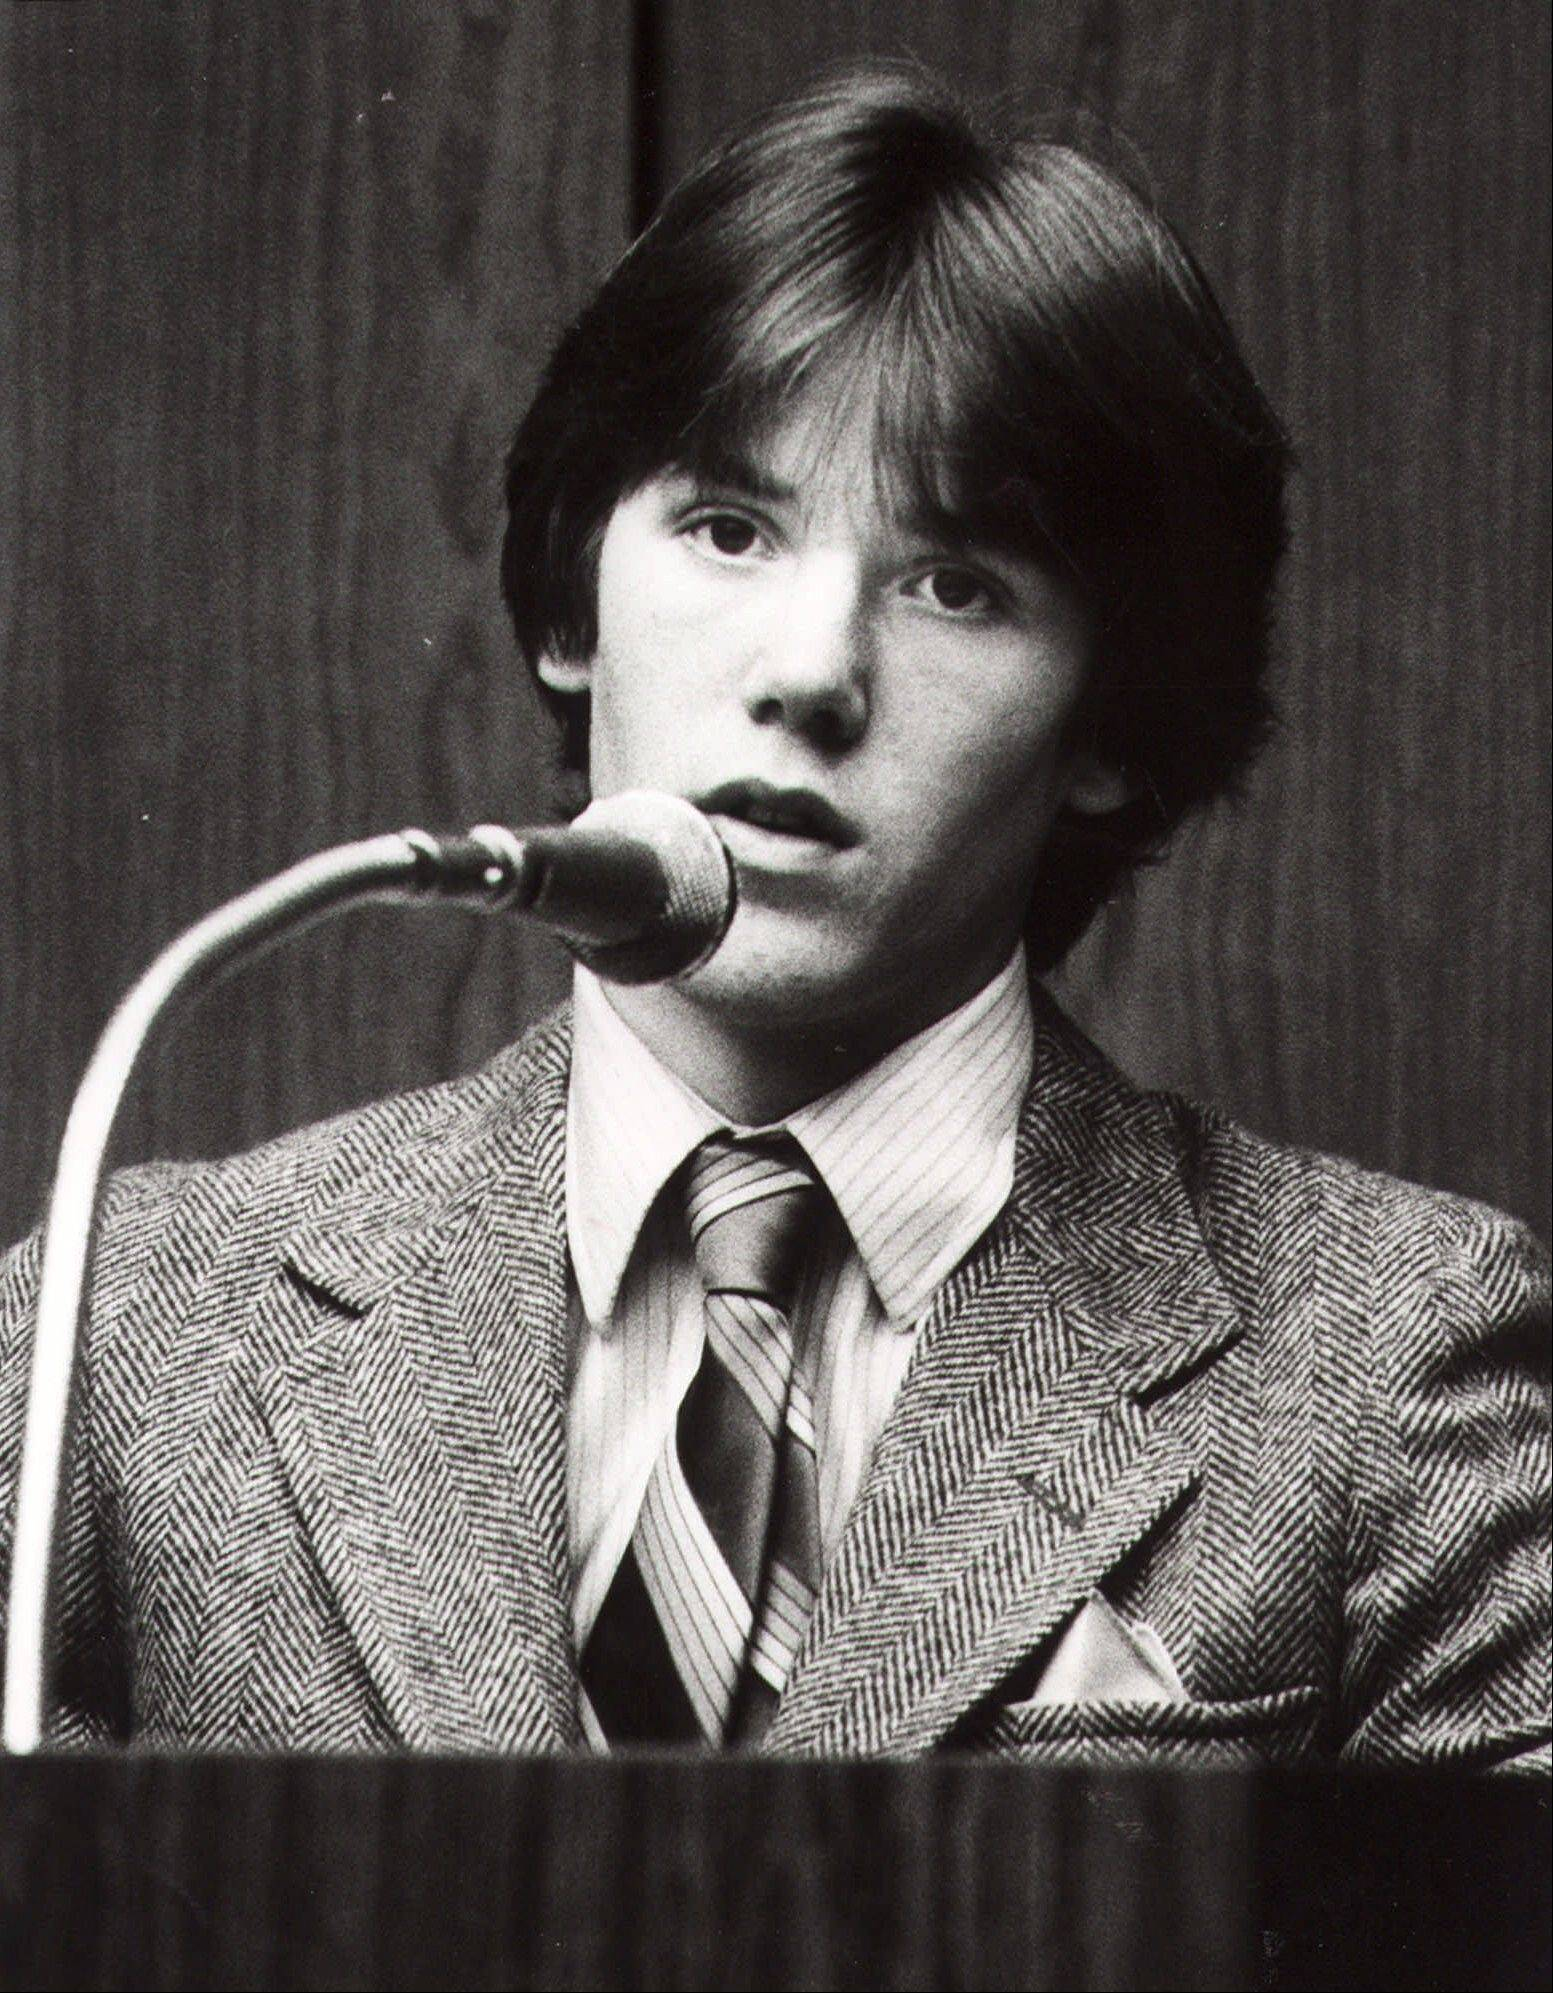 Steven Stayner testifies about his abduction in 1972 by Kenneth Eugene Parnell and his seven years in captivity. Stayner was kidnapped in 1972 while walking home from school at age 7 in Merced, California.